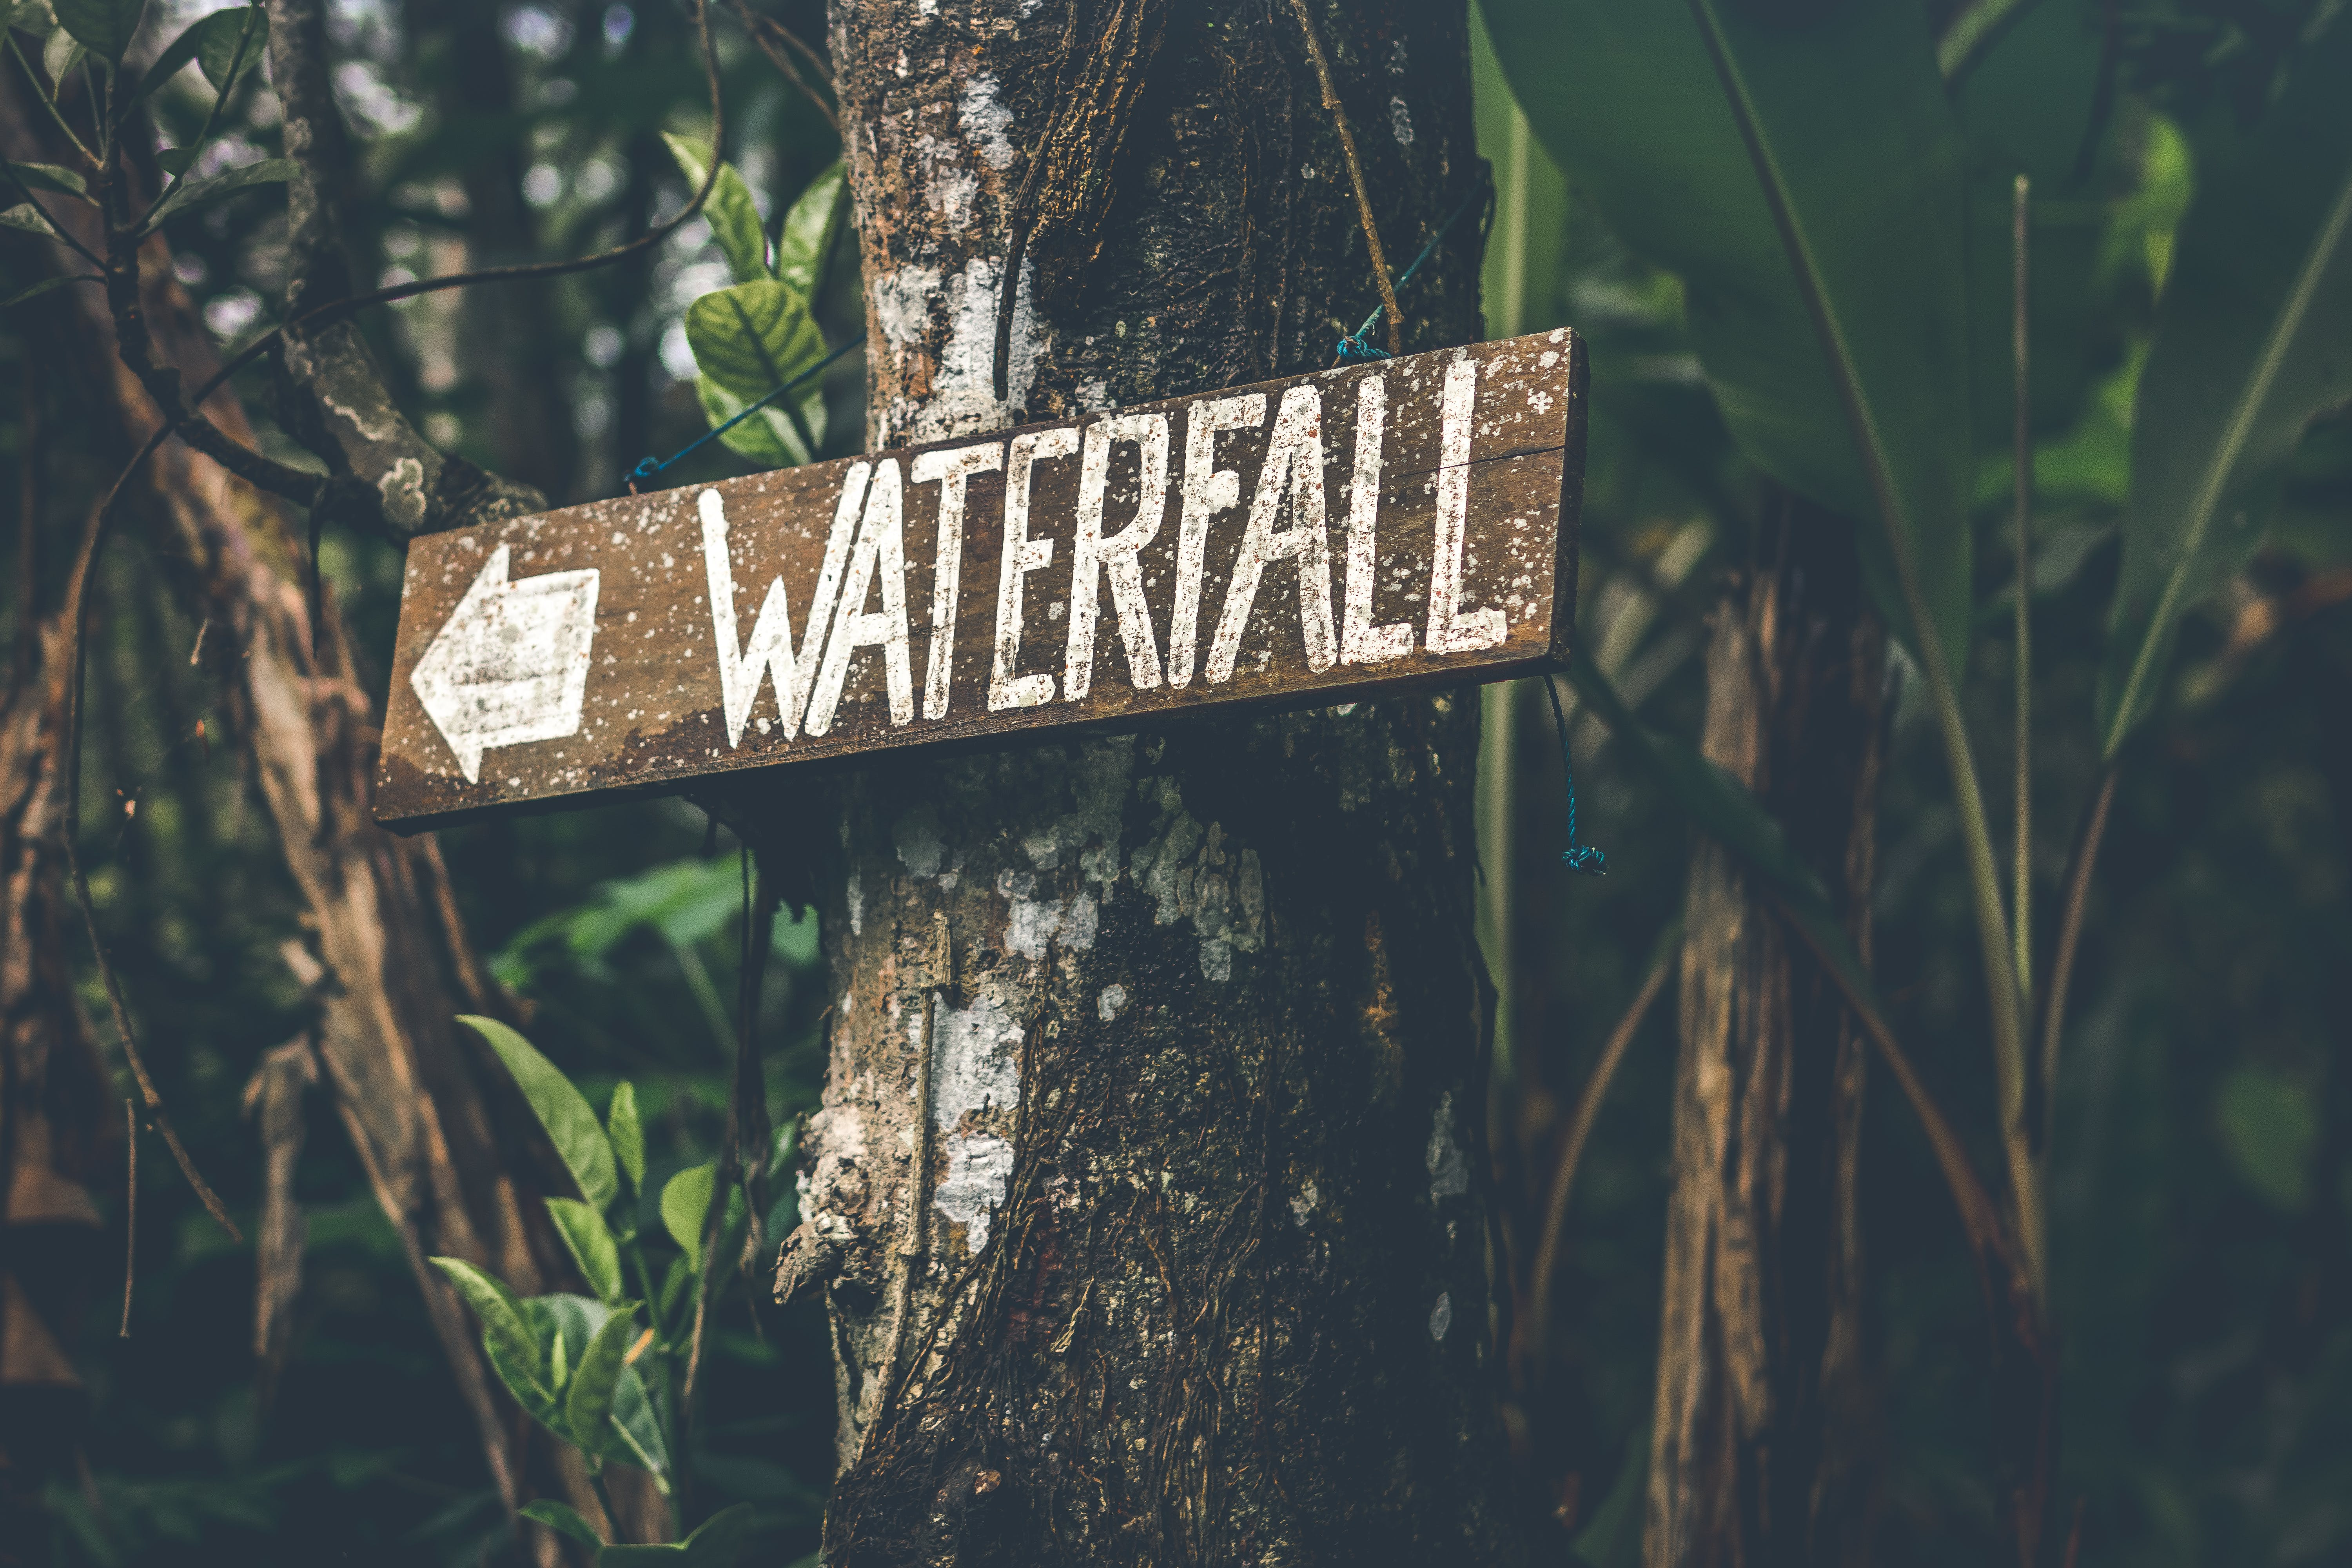 Brown Wooden Waterfall Direction Sign Placed on Brown Tree Bark